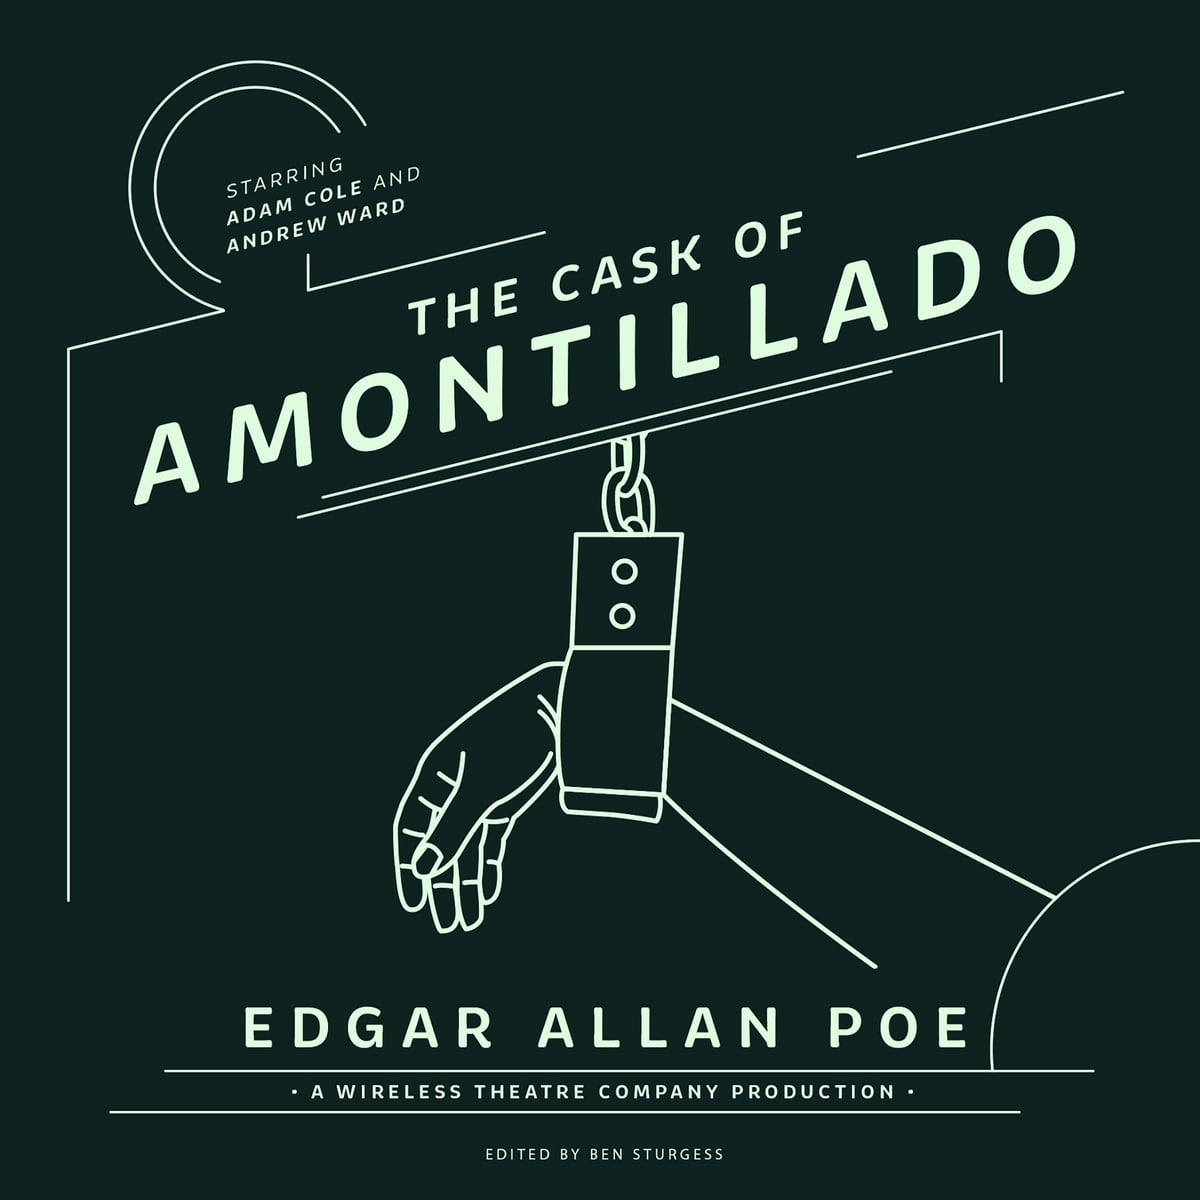 when did the cask of amontillado take place